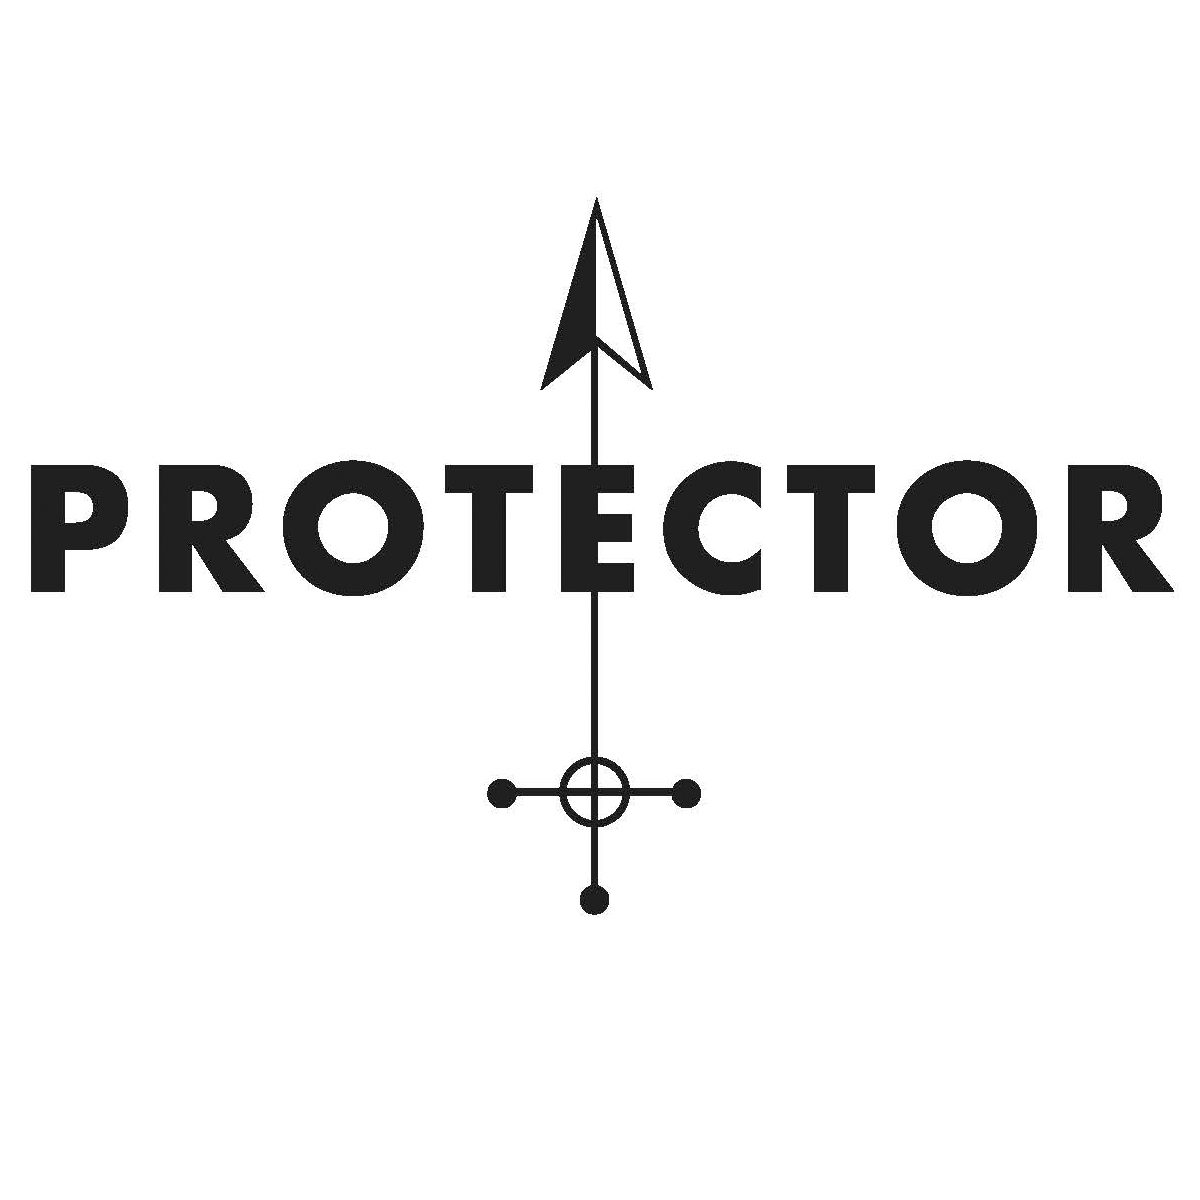 PROTECTOR - LOGO ADDED TO OTHER PRODUCTS